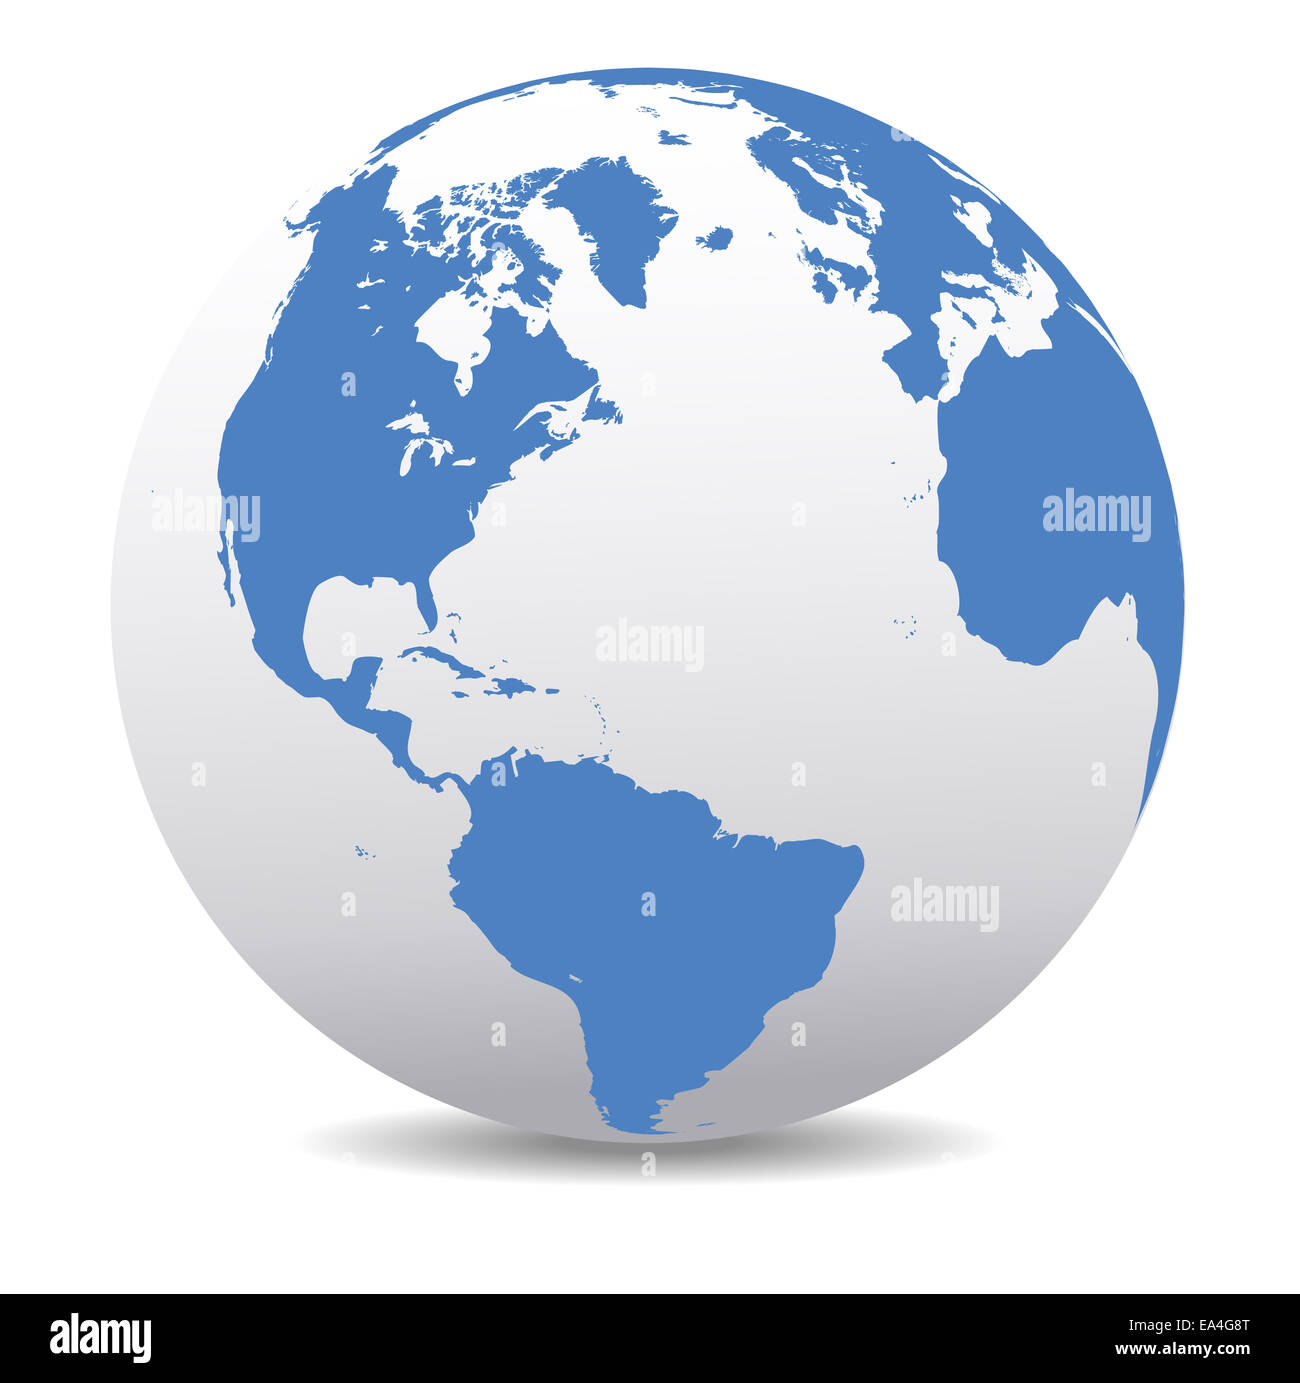 America world earth icon globe map stock photo 75088632 alamy america world earth icon globe map gumiabroncs Gallery